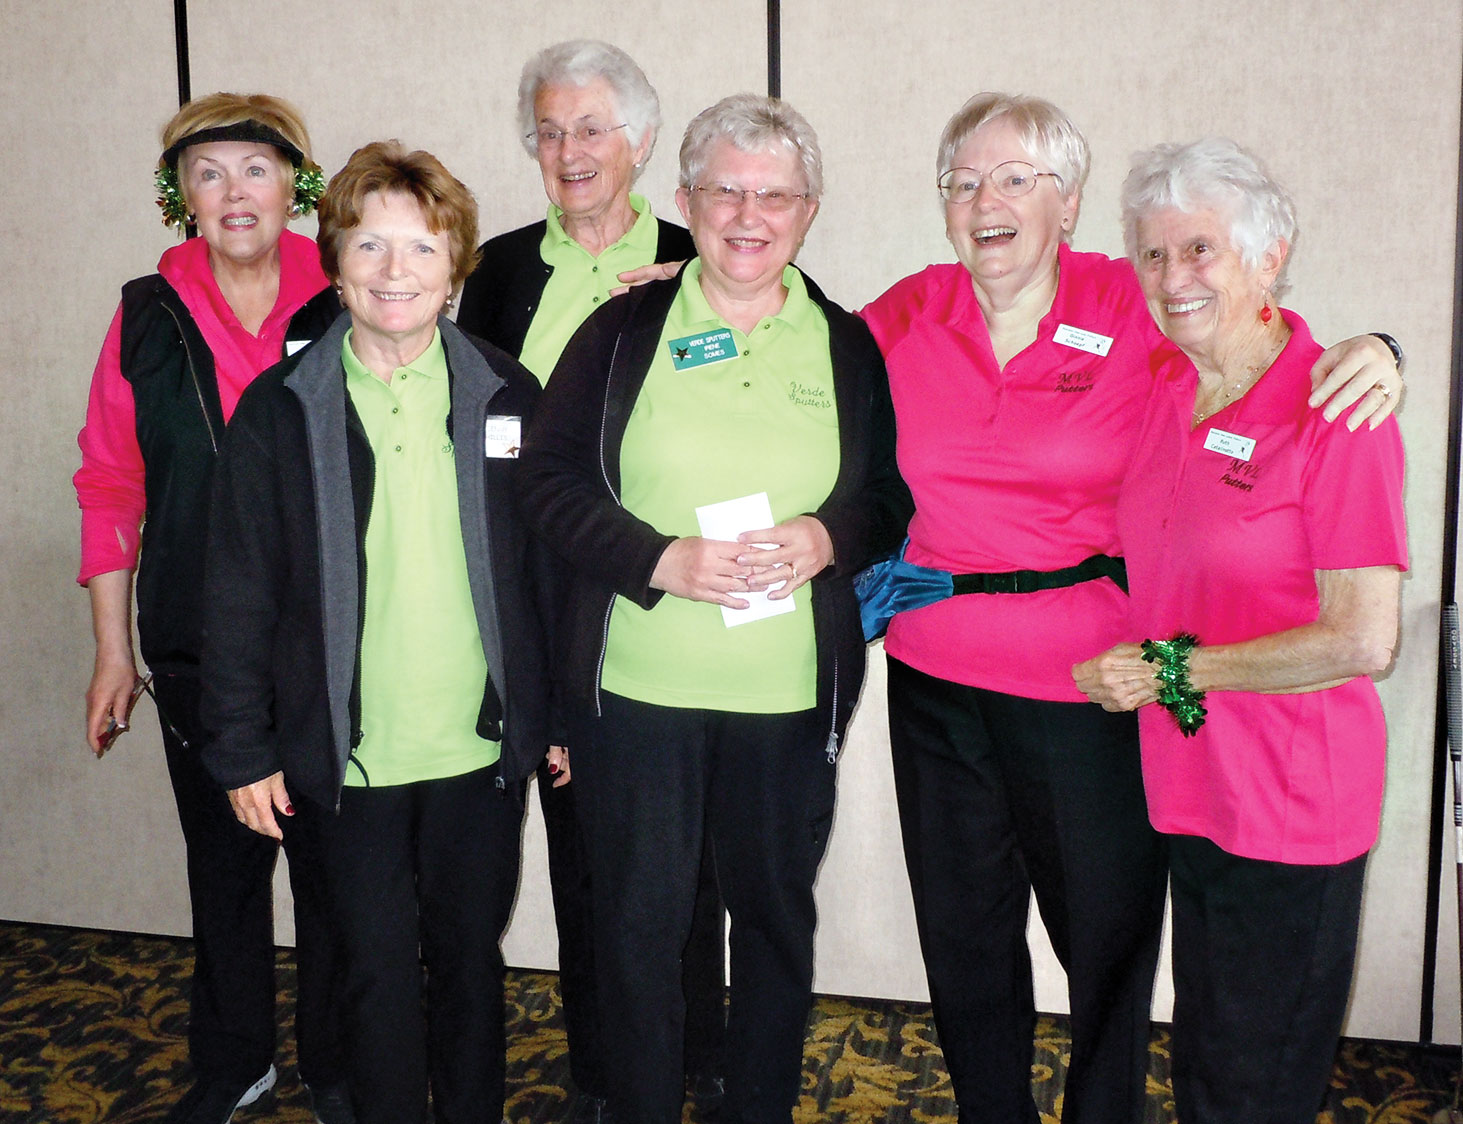 The First Place winning team members are Vicki Strief, Lenny Hillis, Gail Crawford, Irene Somes, Ginny Schoepf and Ruth Catalinotto.